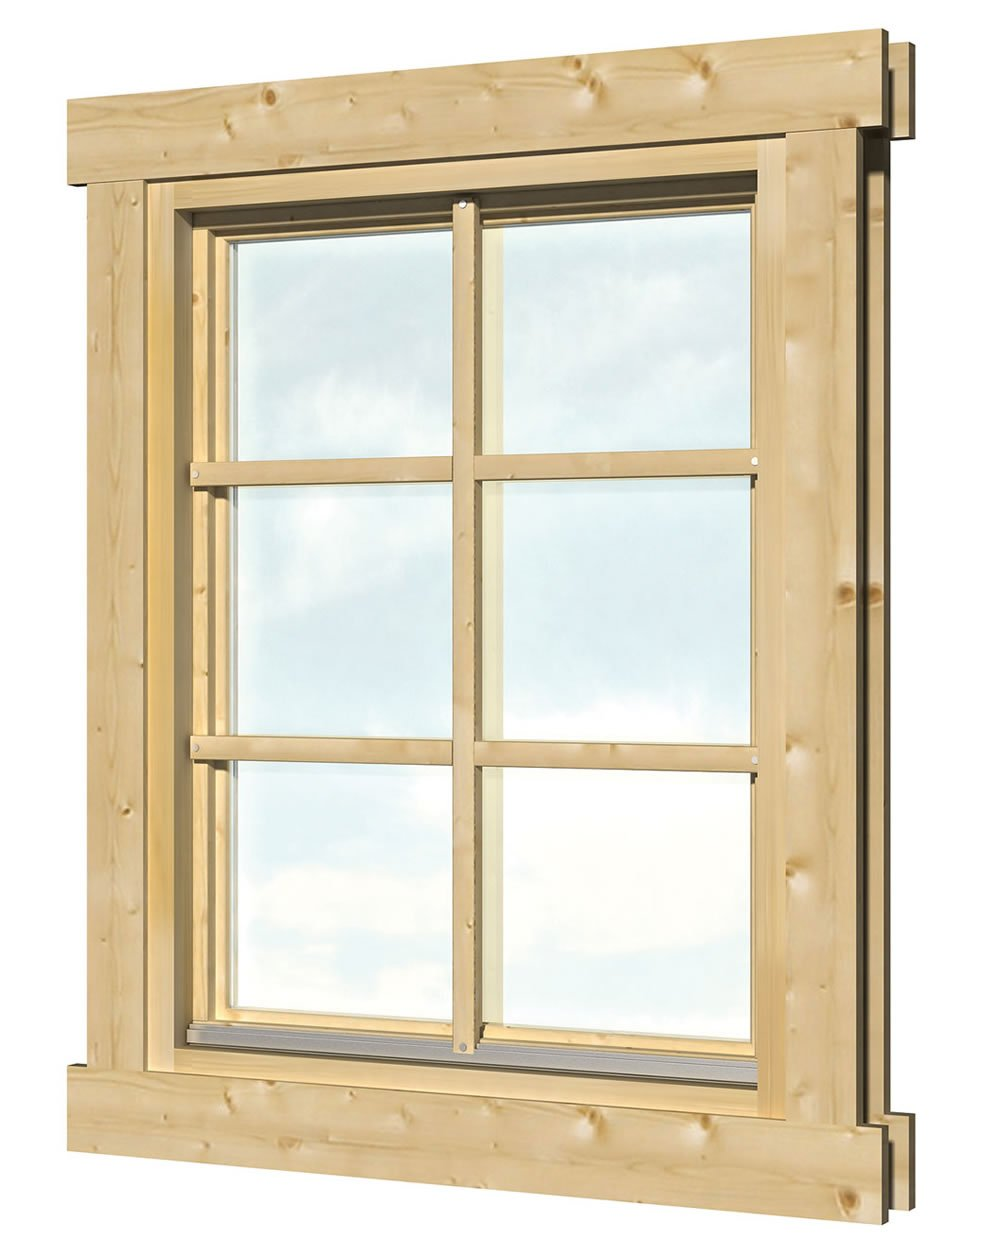 Double glazed windows for log cabins for Log cabin window